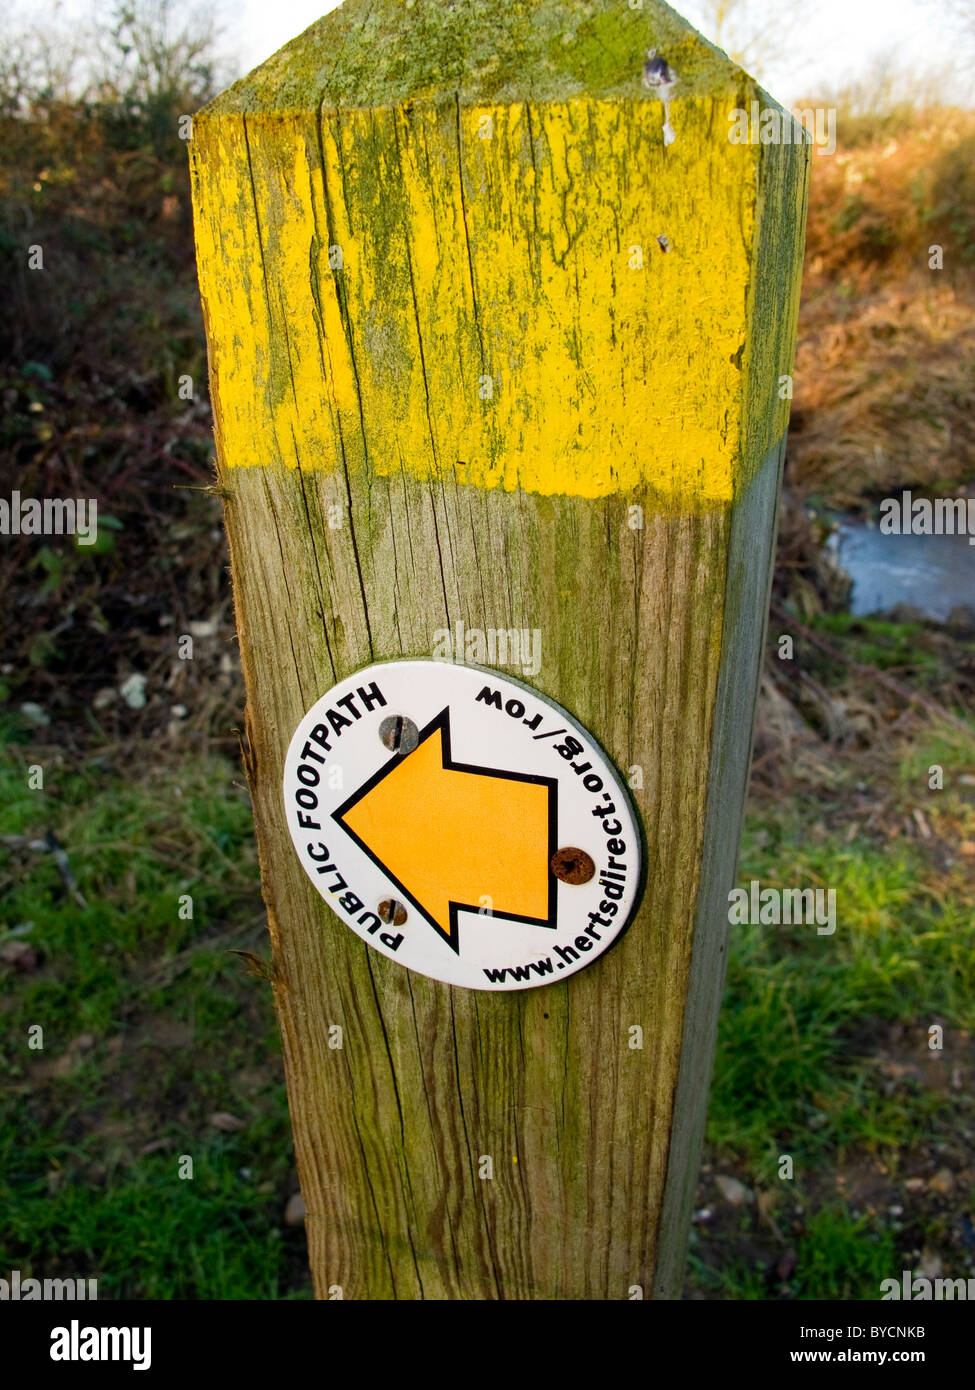 Public footpath sign with yellow arrow on a wooden post by the footpath by The River Stort in Harlow, Essex, UK - Stock Image